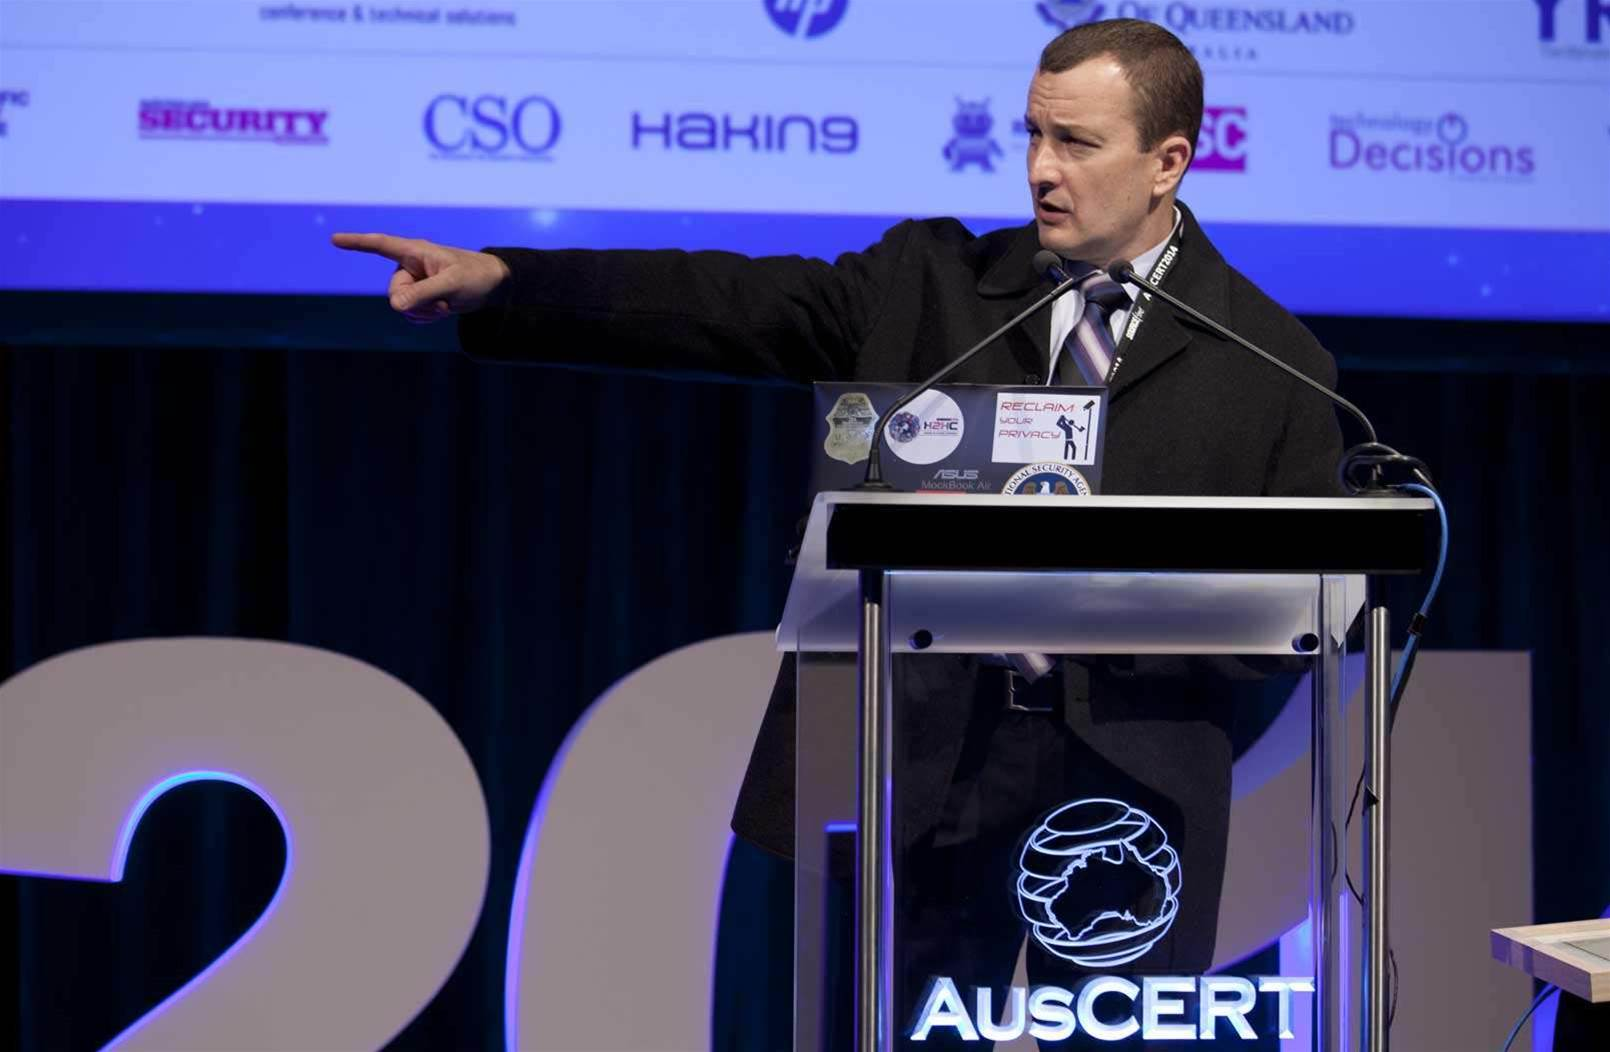 AusCERT speakers call for knowledge sharing